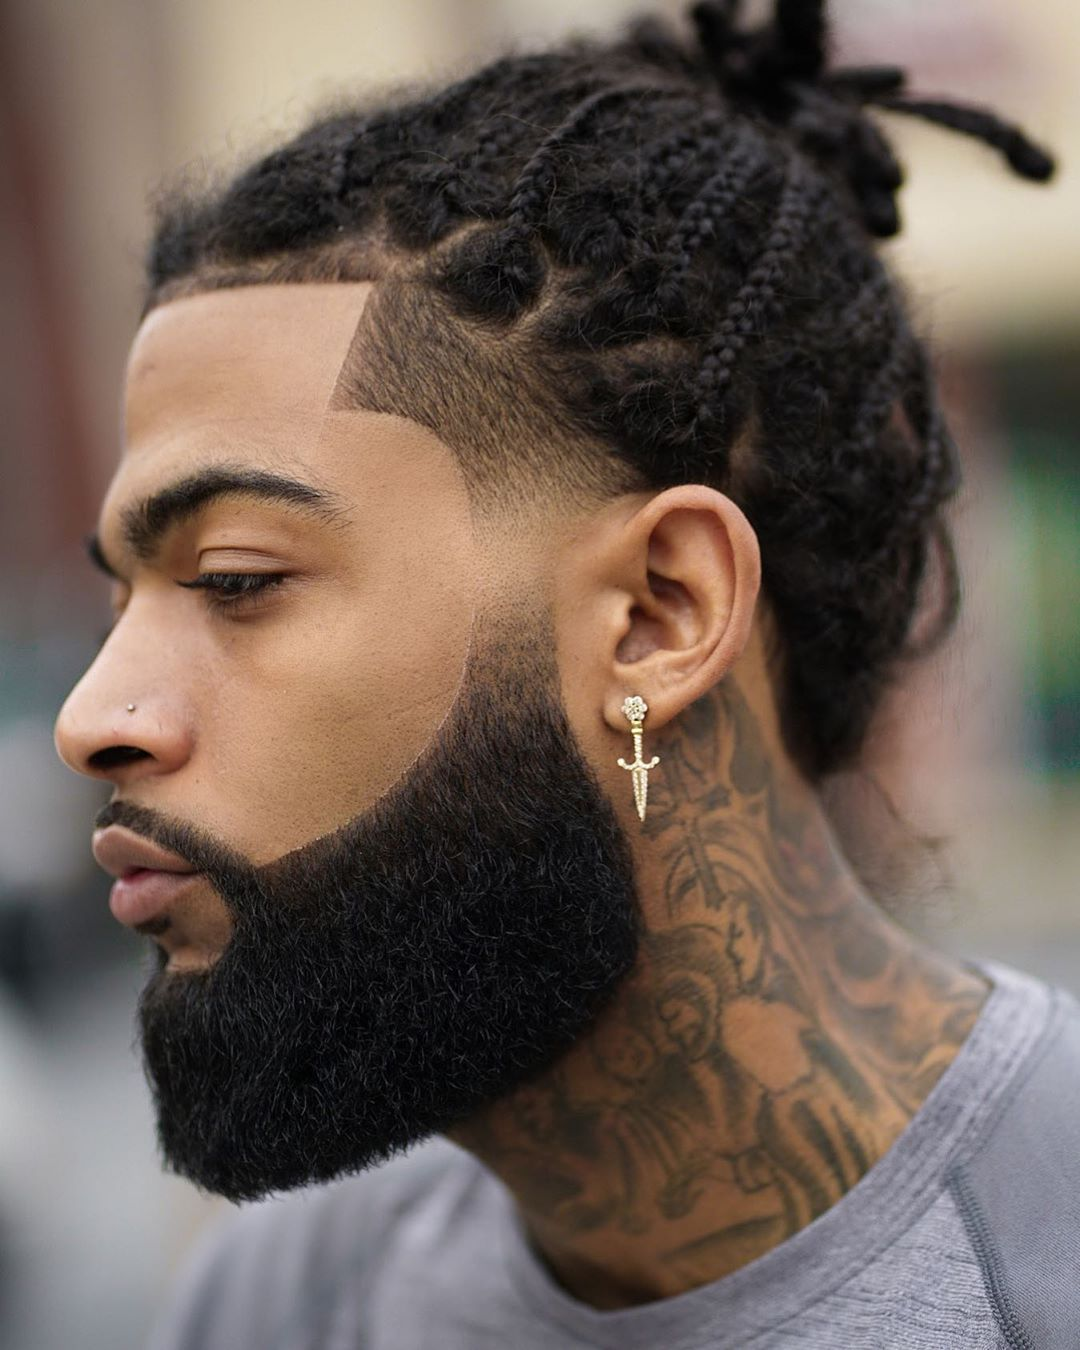 25 Fresh Shape Up Haircuts 2020 Edition In 2020 Beard Sculpting Tapered Haircut Braids With Fade